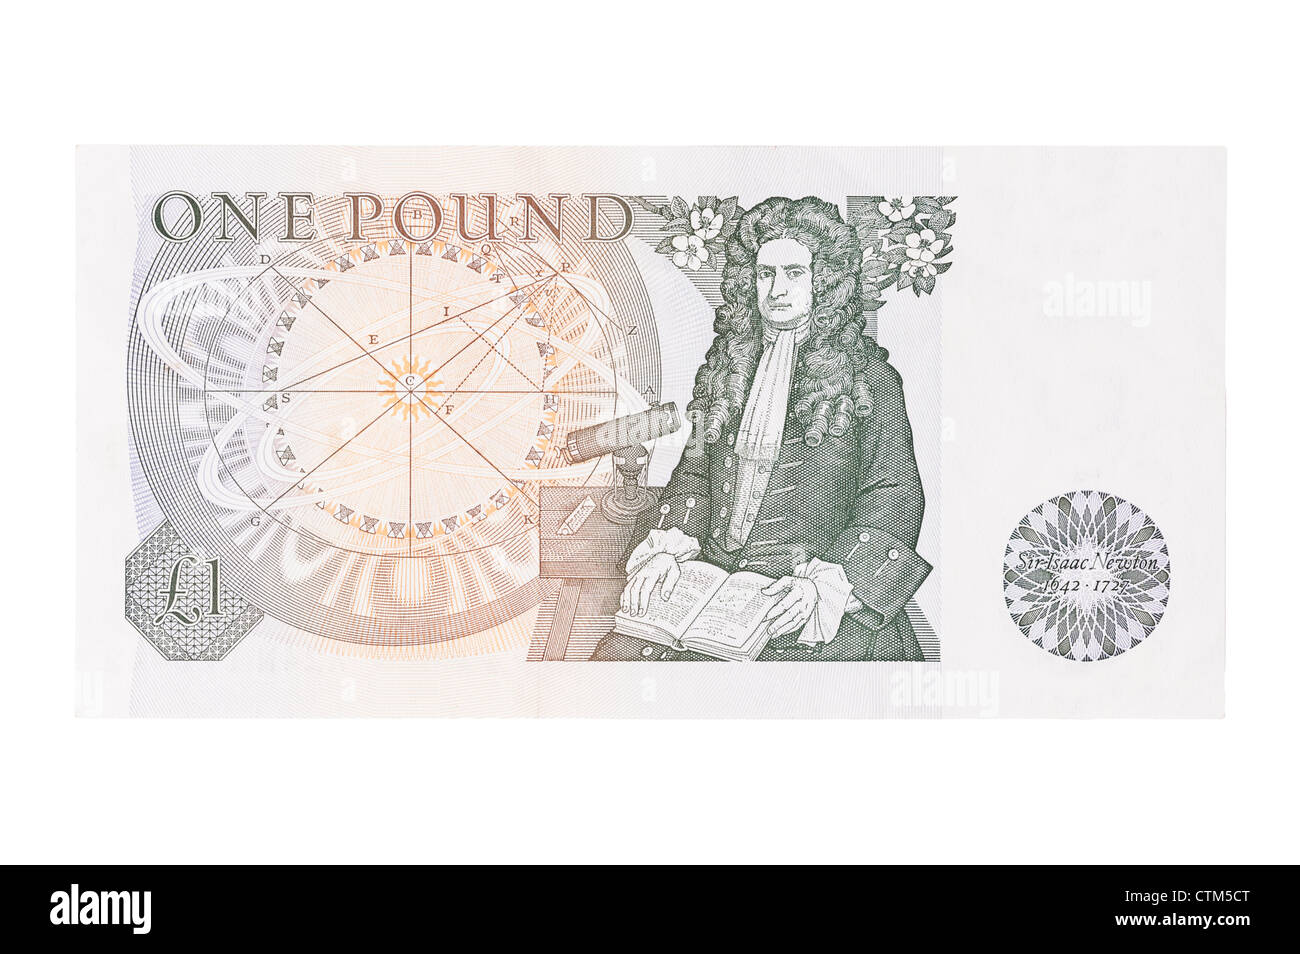 A one pound £1 bank note of English currency on a white background - Stock Image